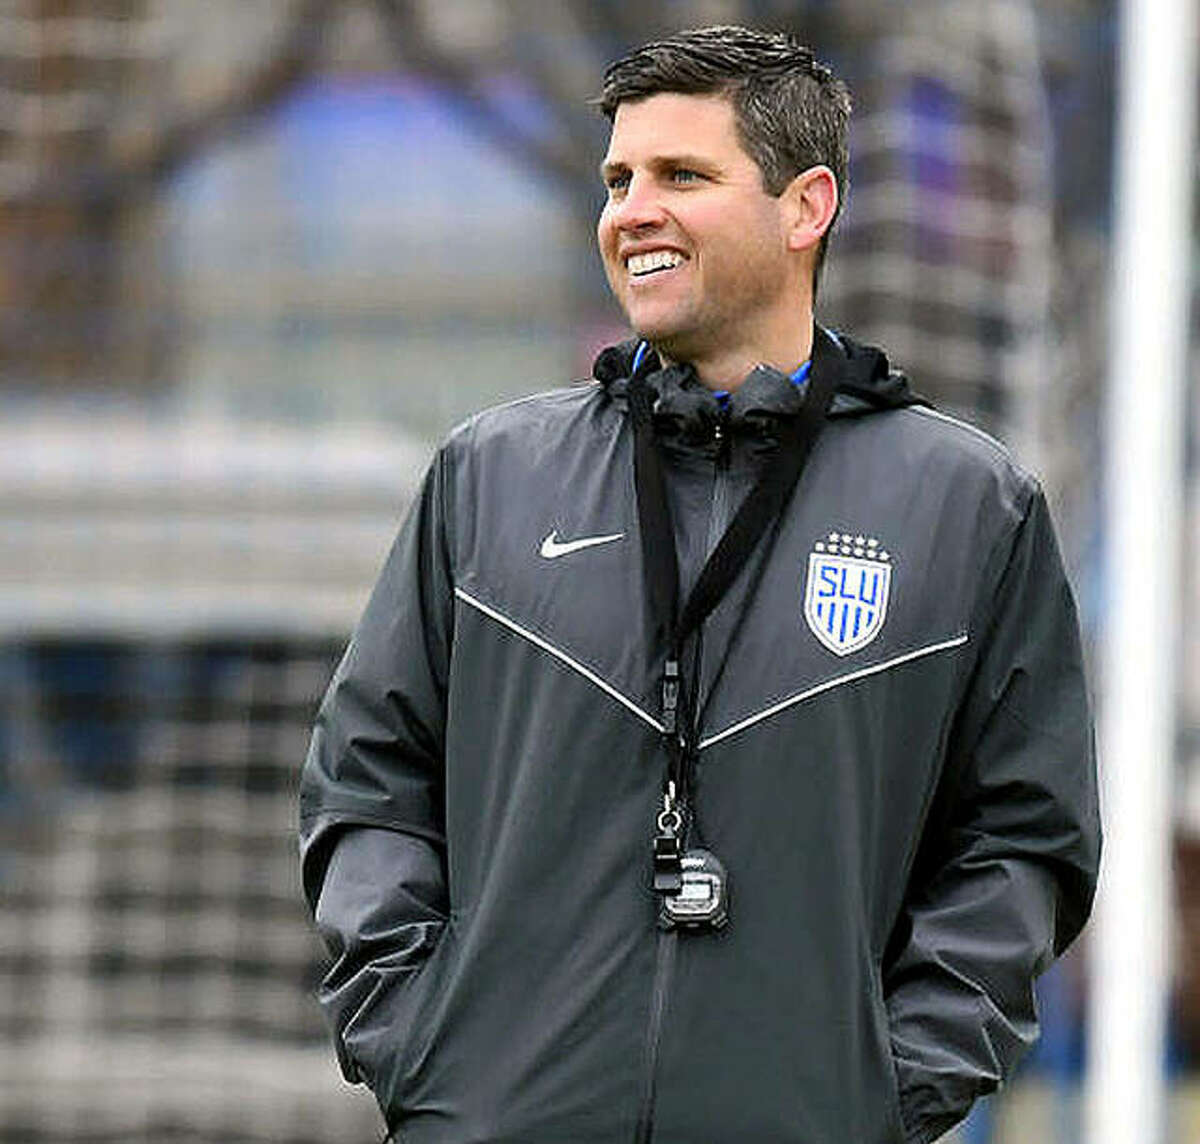 SLU soccer coach Kevin Kalish spent 15 years coaching at SIUE, six as head coach, before leaving to accept a position with Saint Louis Scott Gallagher Soccer club. he moved to SLU as head coach in 2018.